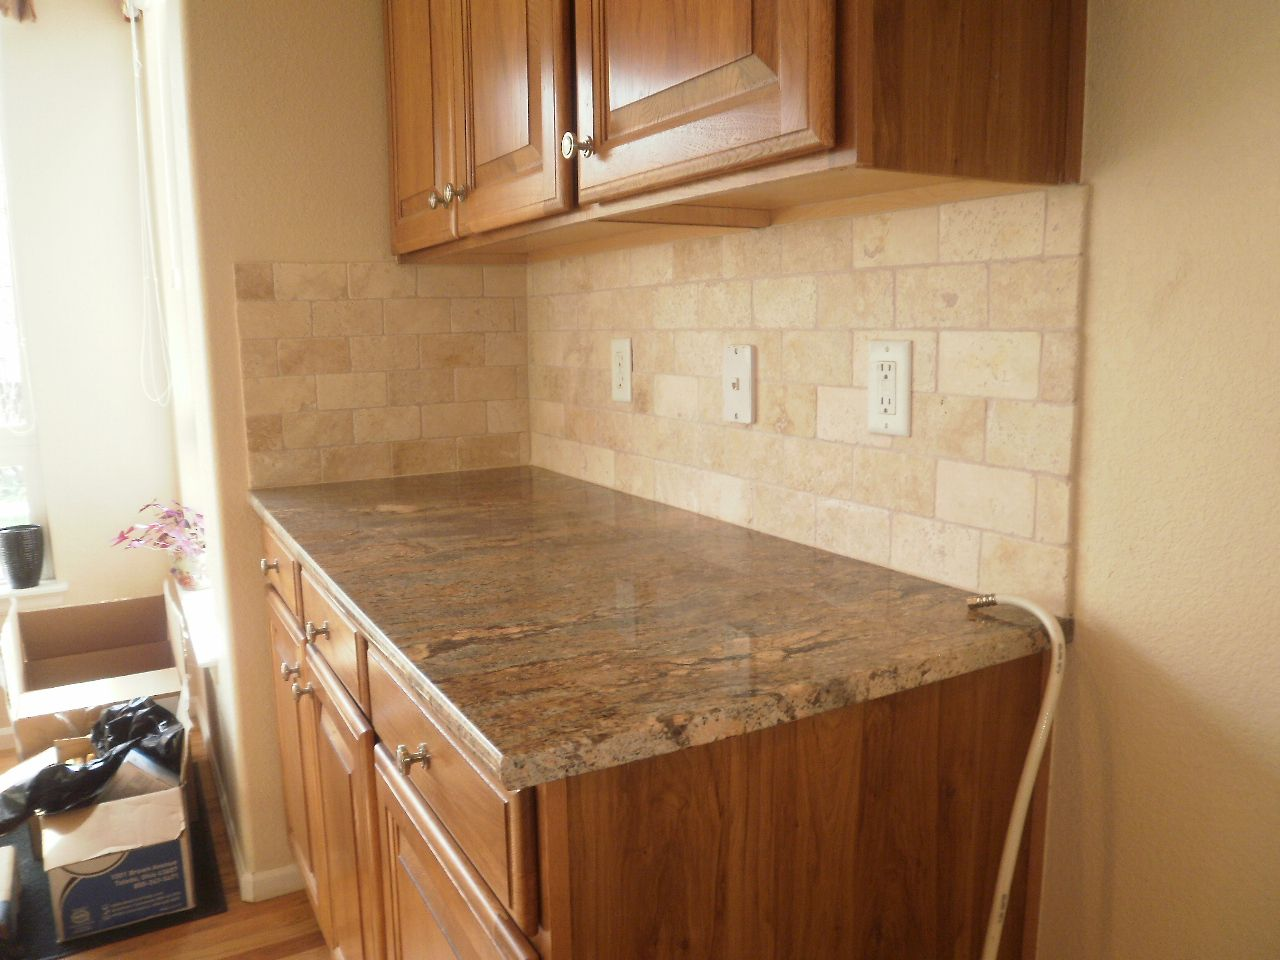 Travertine tile patterns for kitchens range Backsplash tile for kitchen